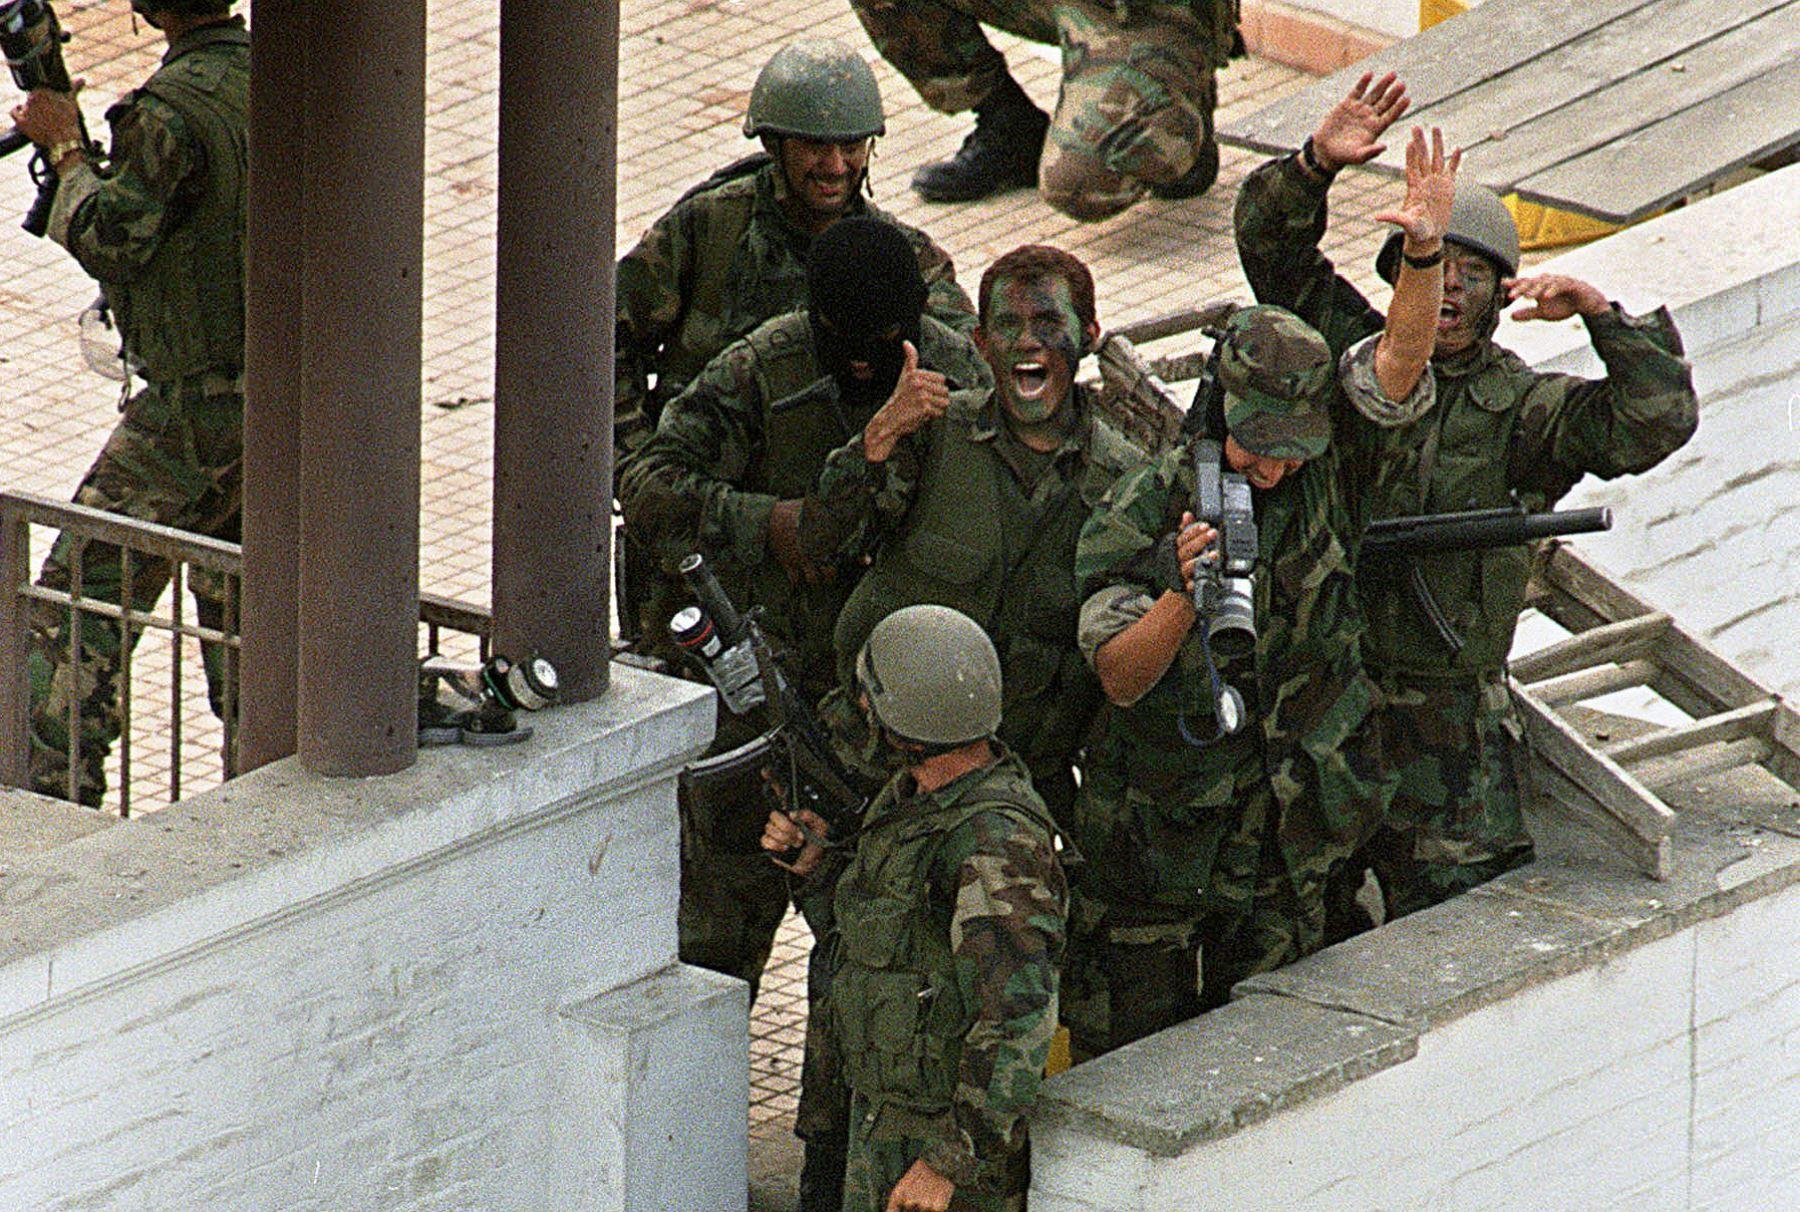 Peruvian SOF celebrating victory after successfully conducted Operation Chavin de Huantar and rescued more than 70 hostages in Japanese Ambassadors residence in Lima, Peru on April 22, 1997